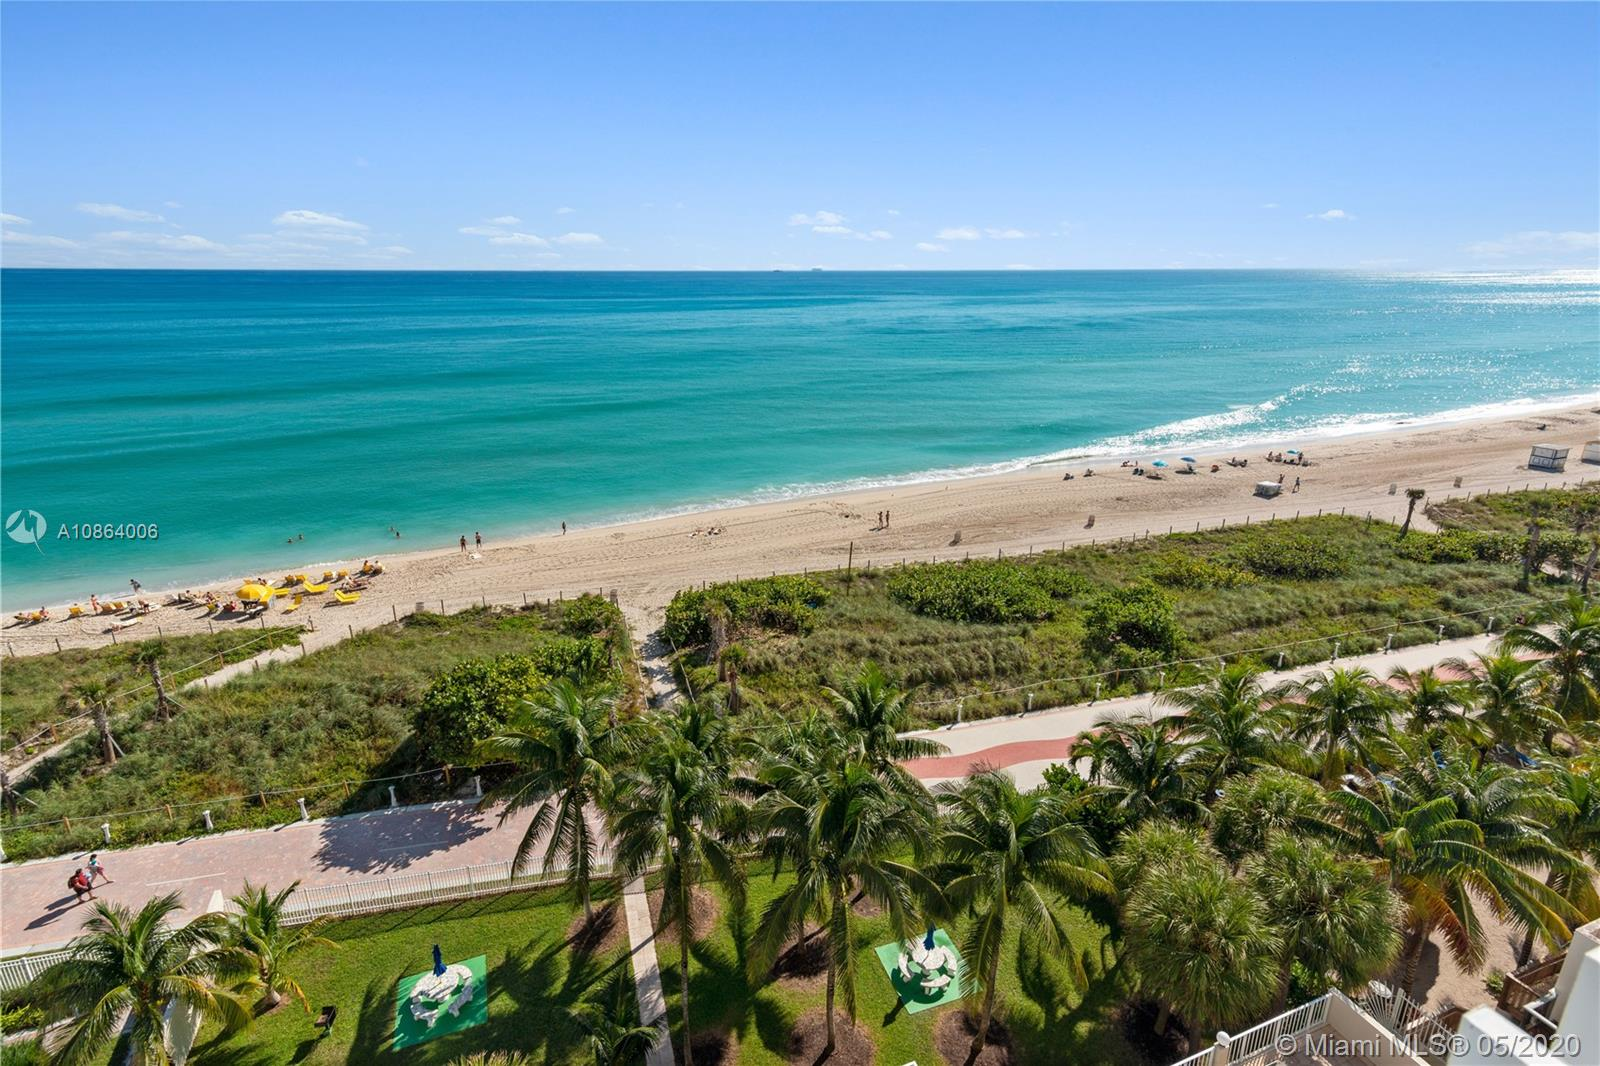 BEAUTIFUL 2/2 OCEANFRONT APT WITH SPECTACULAR VIEWS. NEWLY REMOLDED KITCHEN ONLY 3 UNITS PER FLOOR. WASHER AND DRYER IN THE UINT. PRIVATE POOL, PICNIC AREA WITH BBQ. UNDERGOUND PARKING AND 24HR SECURITY